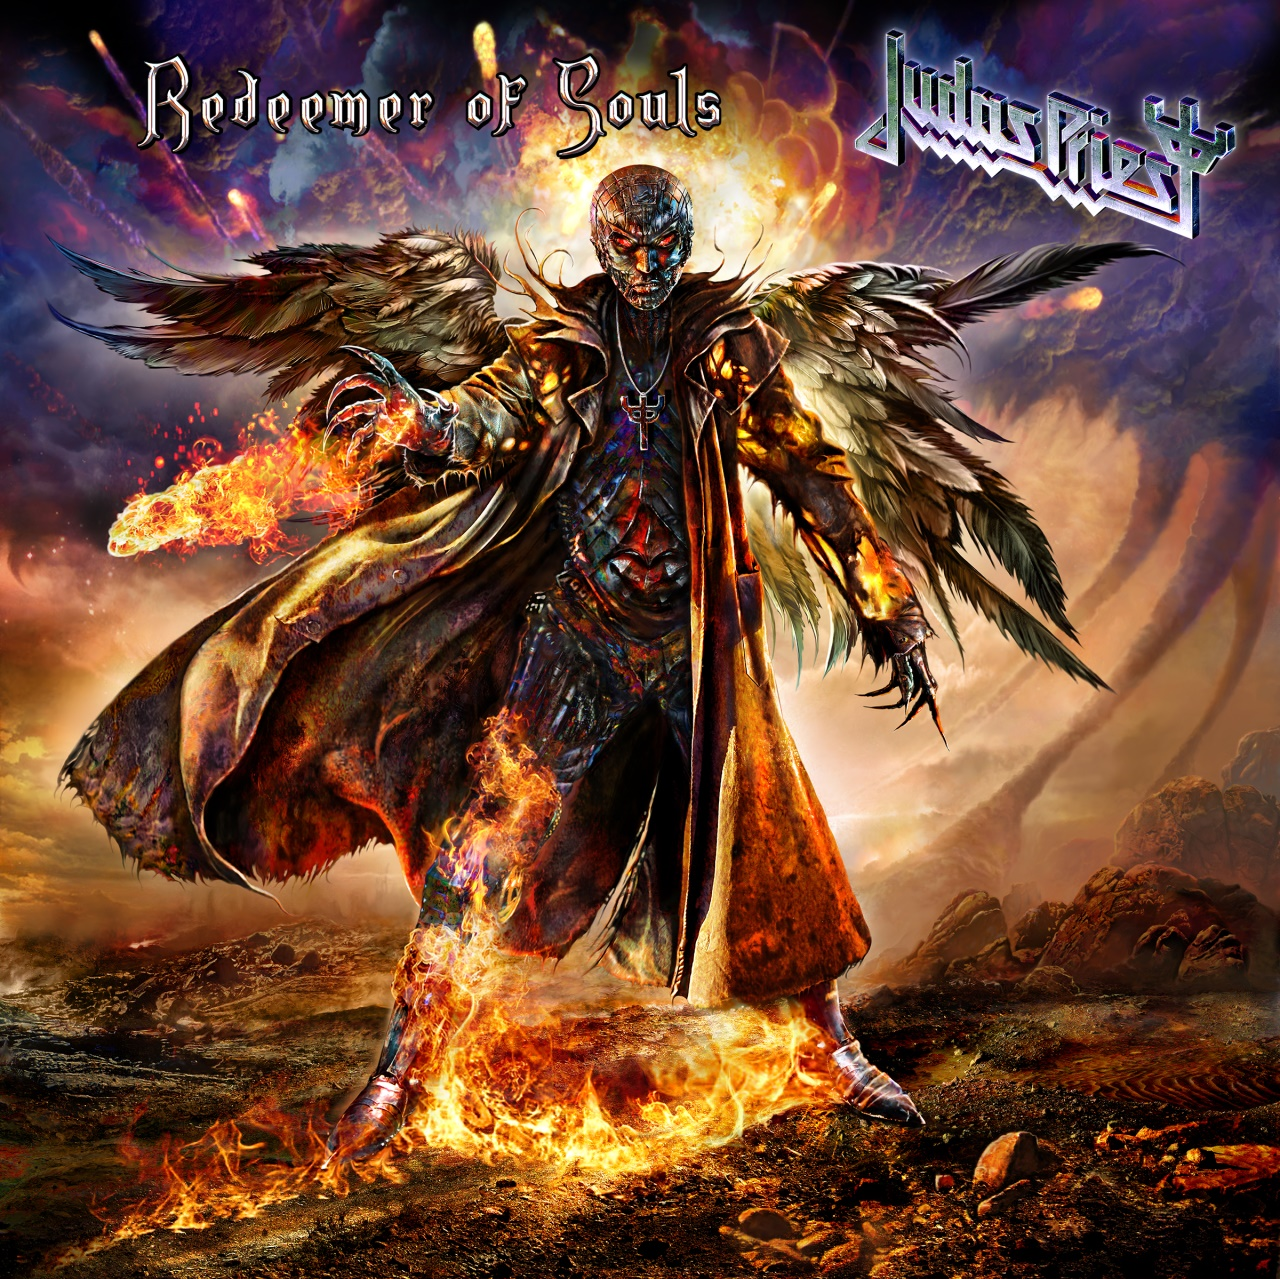 Judas Priest Redeemer of Souls Album Artwork